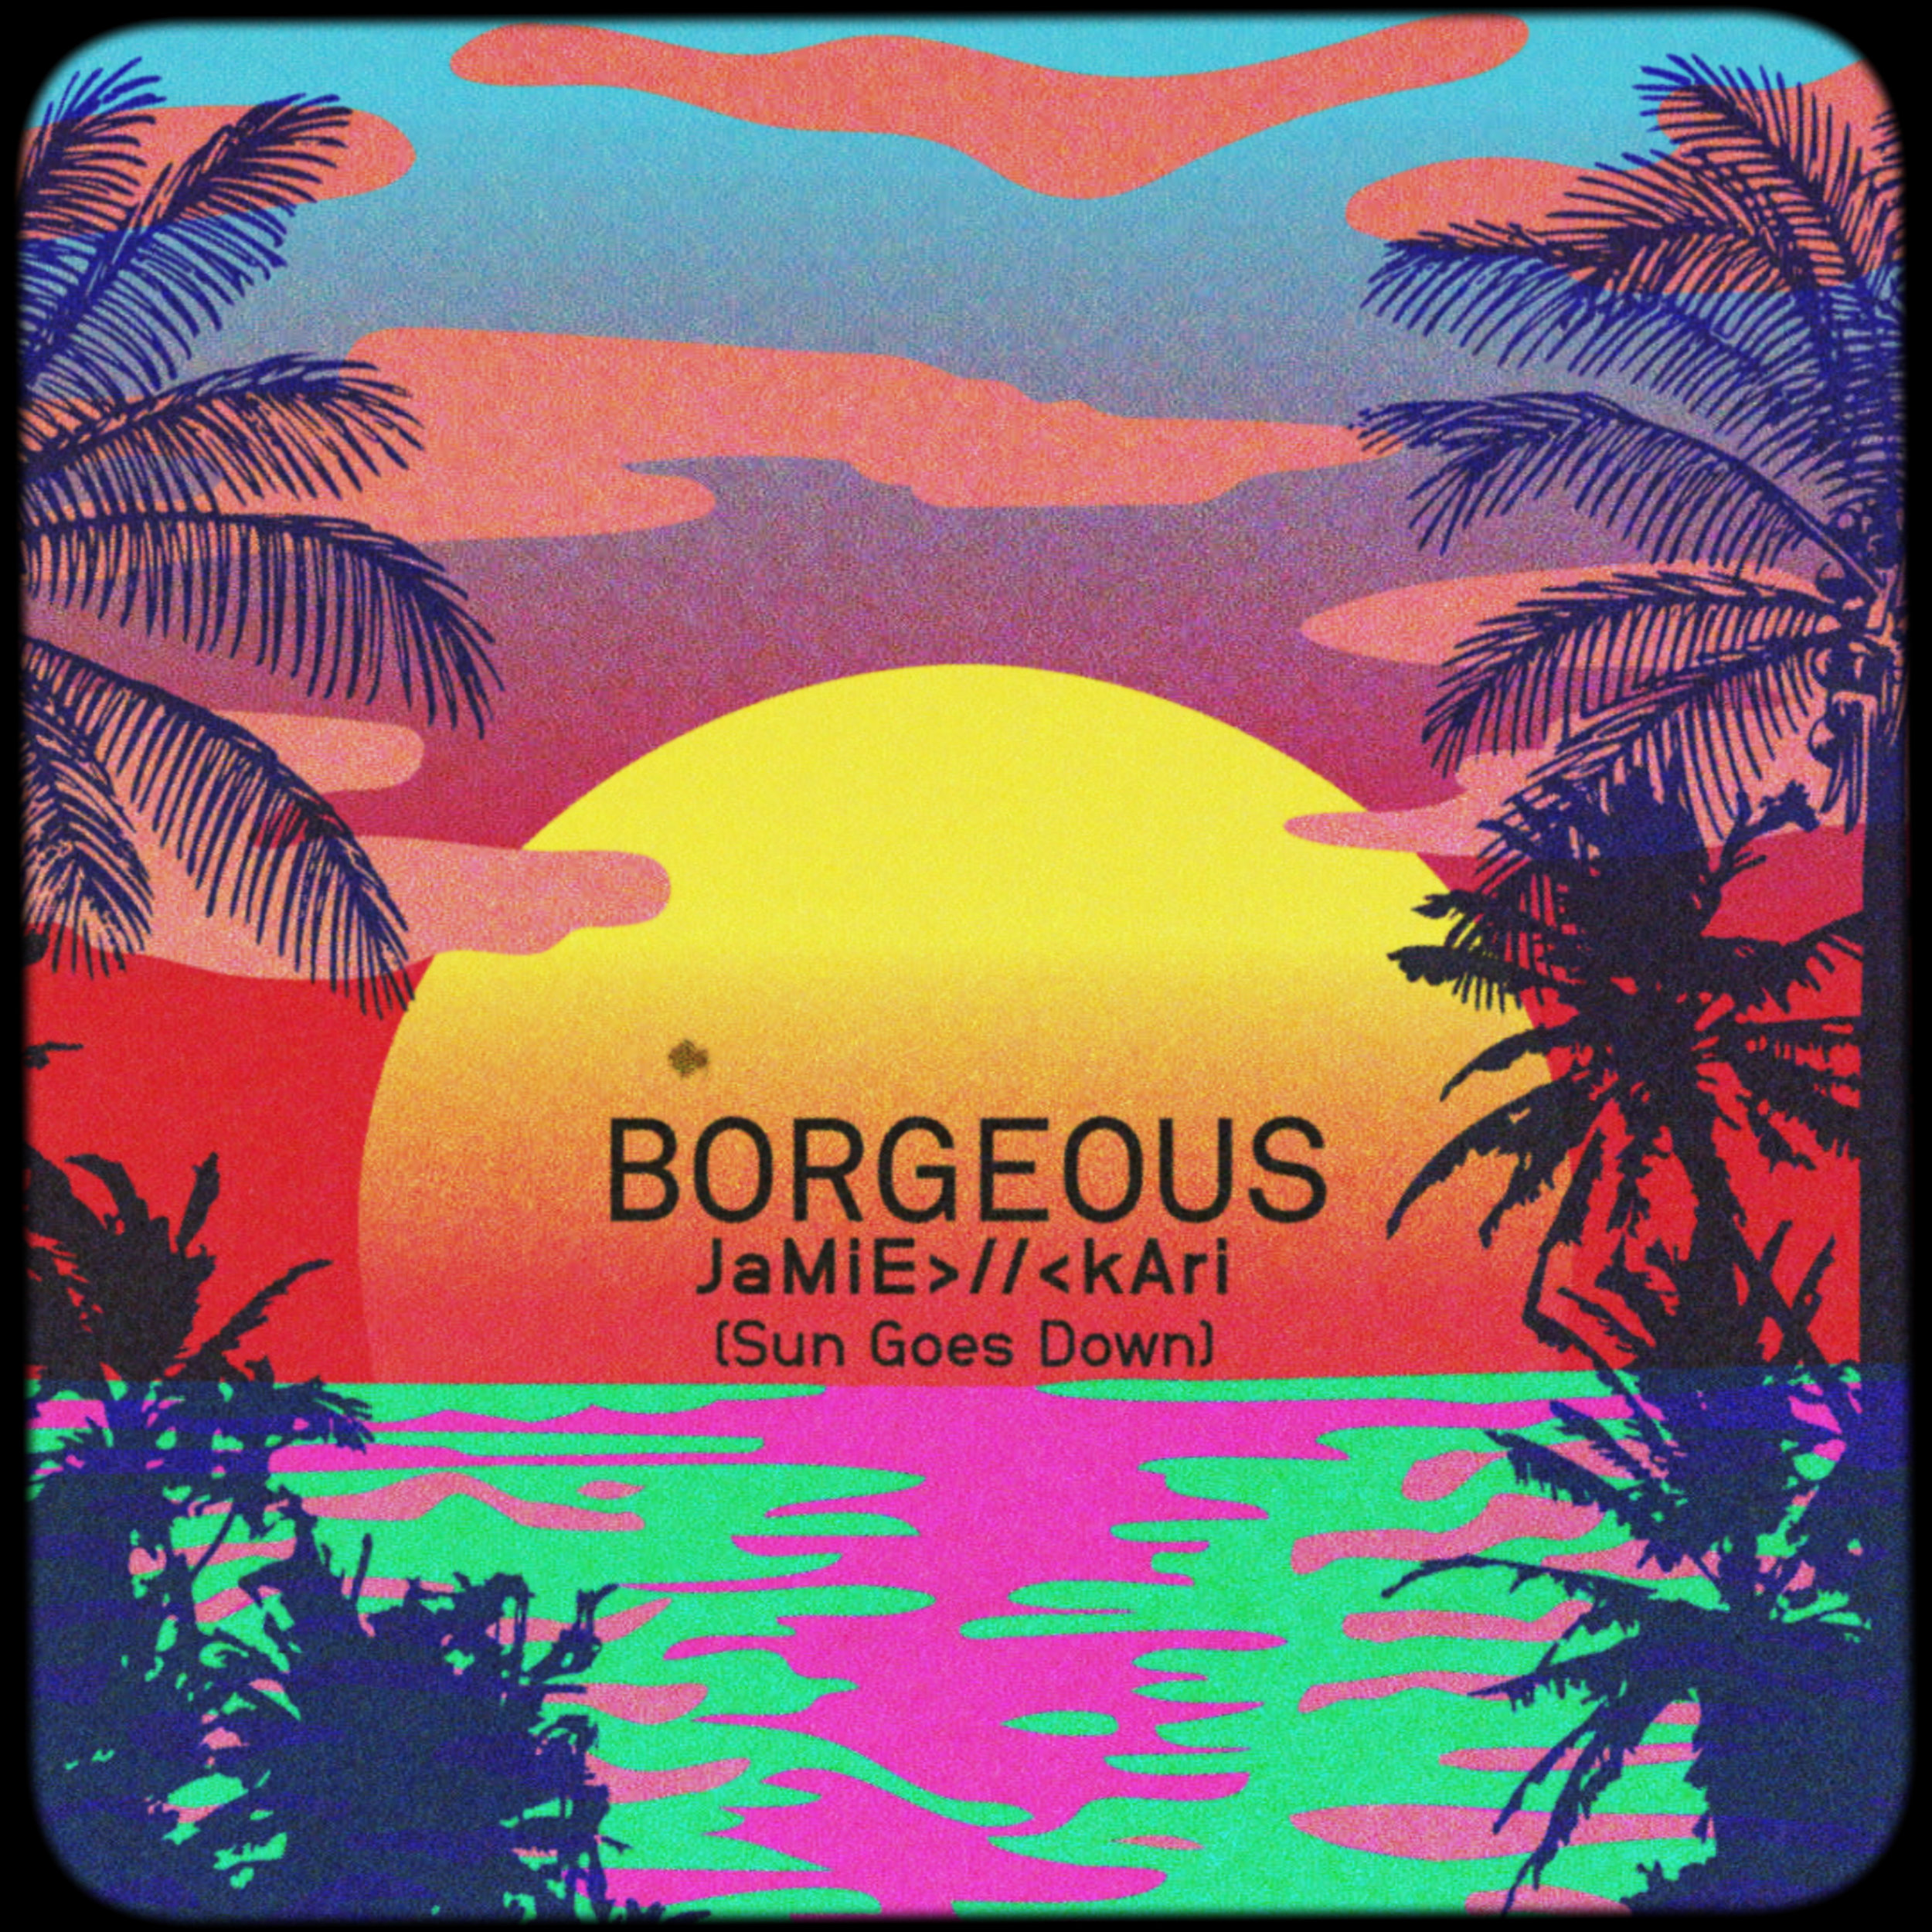 Borgeous, Sun Goes Down album art